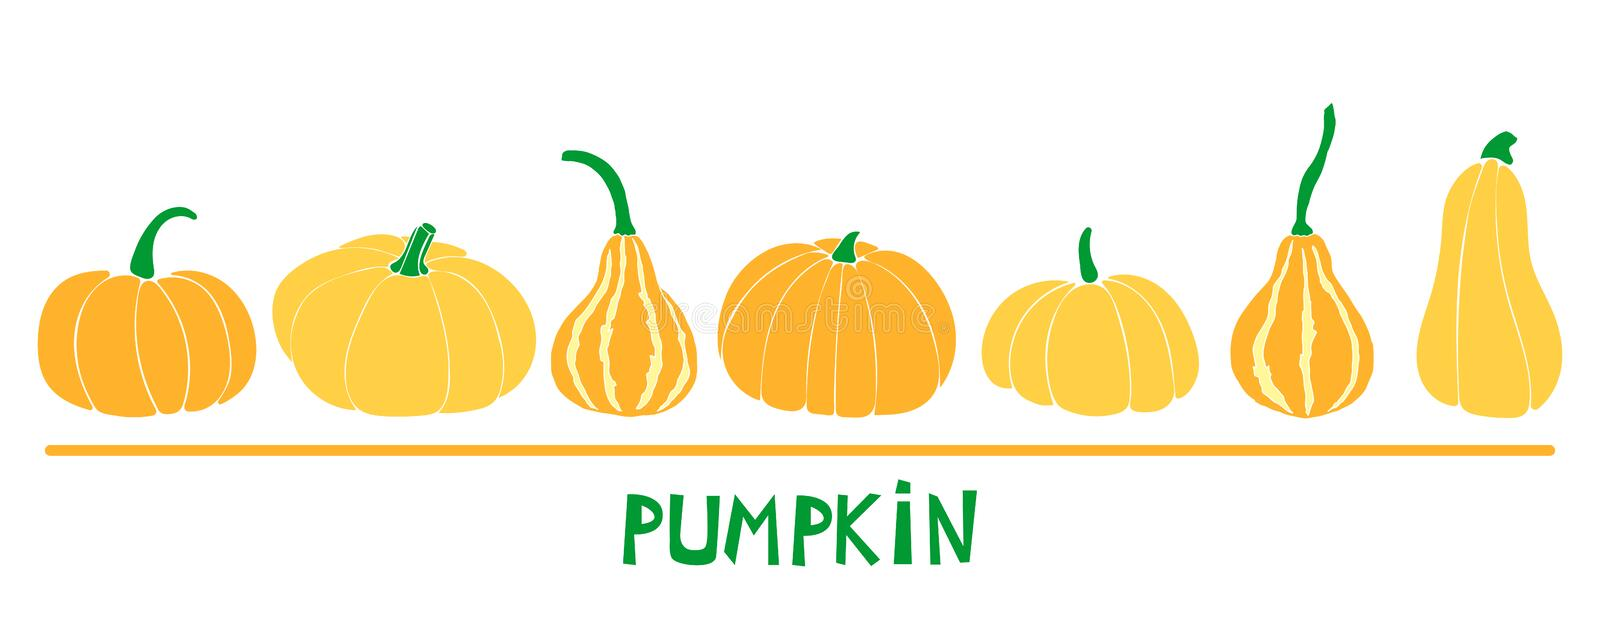 Set with six pumpkins: bottle gourd; cinderella variety; butternut. royalty free illustration